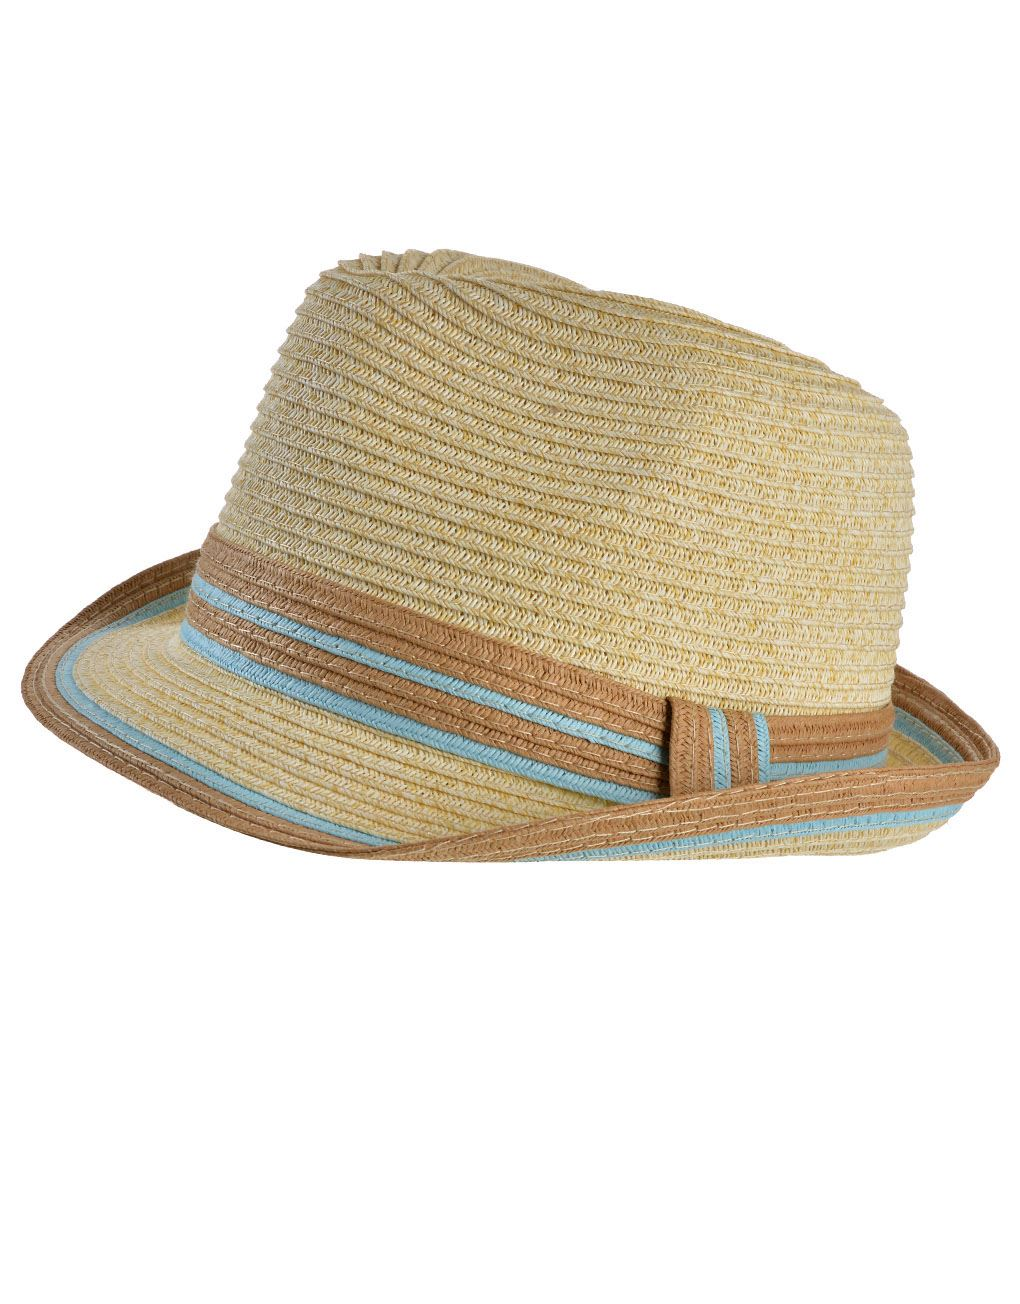 Fedora hat, hats for women, Straw hat, sun hats, white hat, beach hats, Womens hats, summer hats, vacation hat, fashion hats, fedora hats designsbykekugi. 5 out of 5 stars There are womens straw fedora for sale on Etsy, and they cost $ on average. The most popular color?